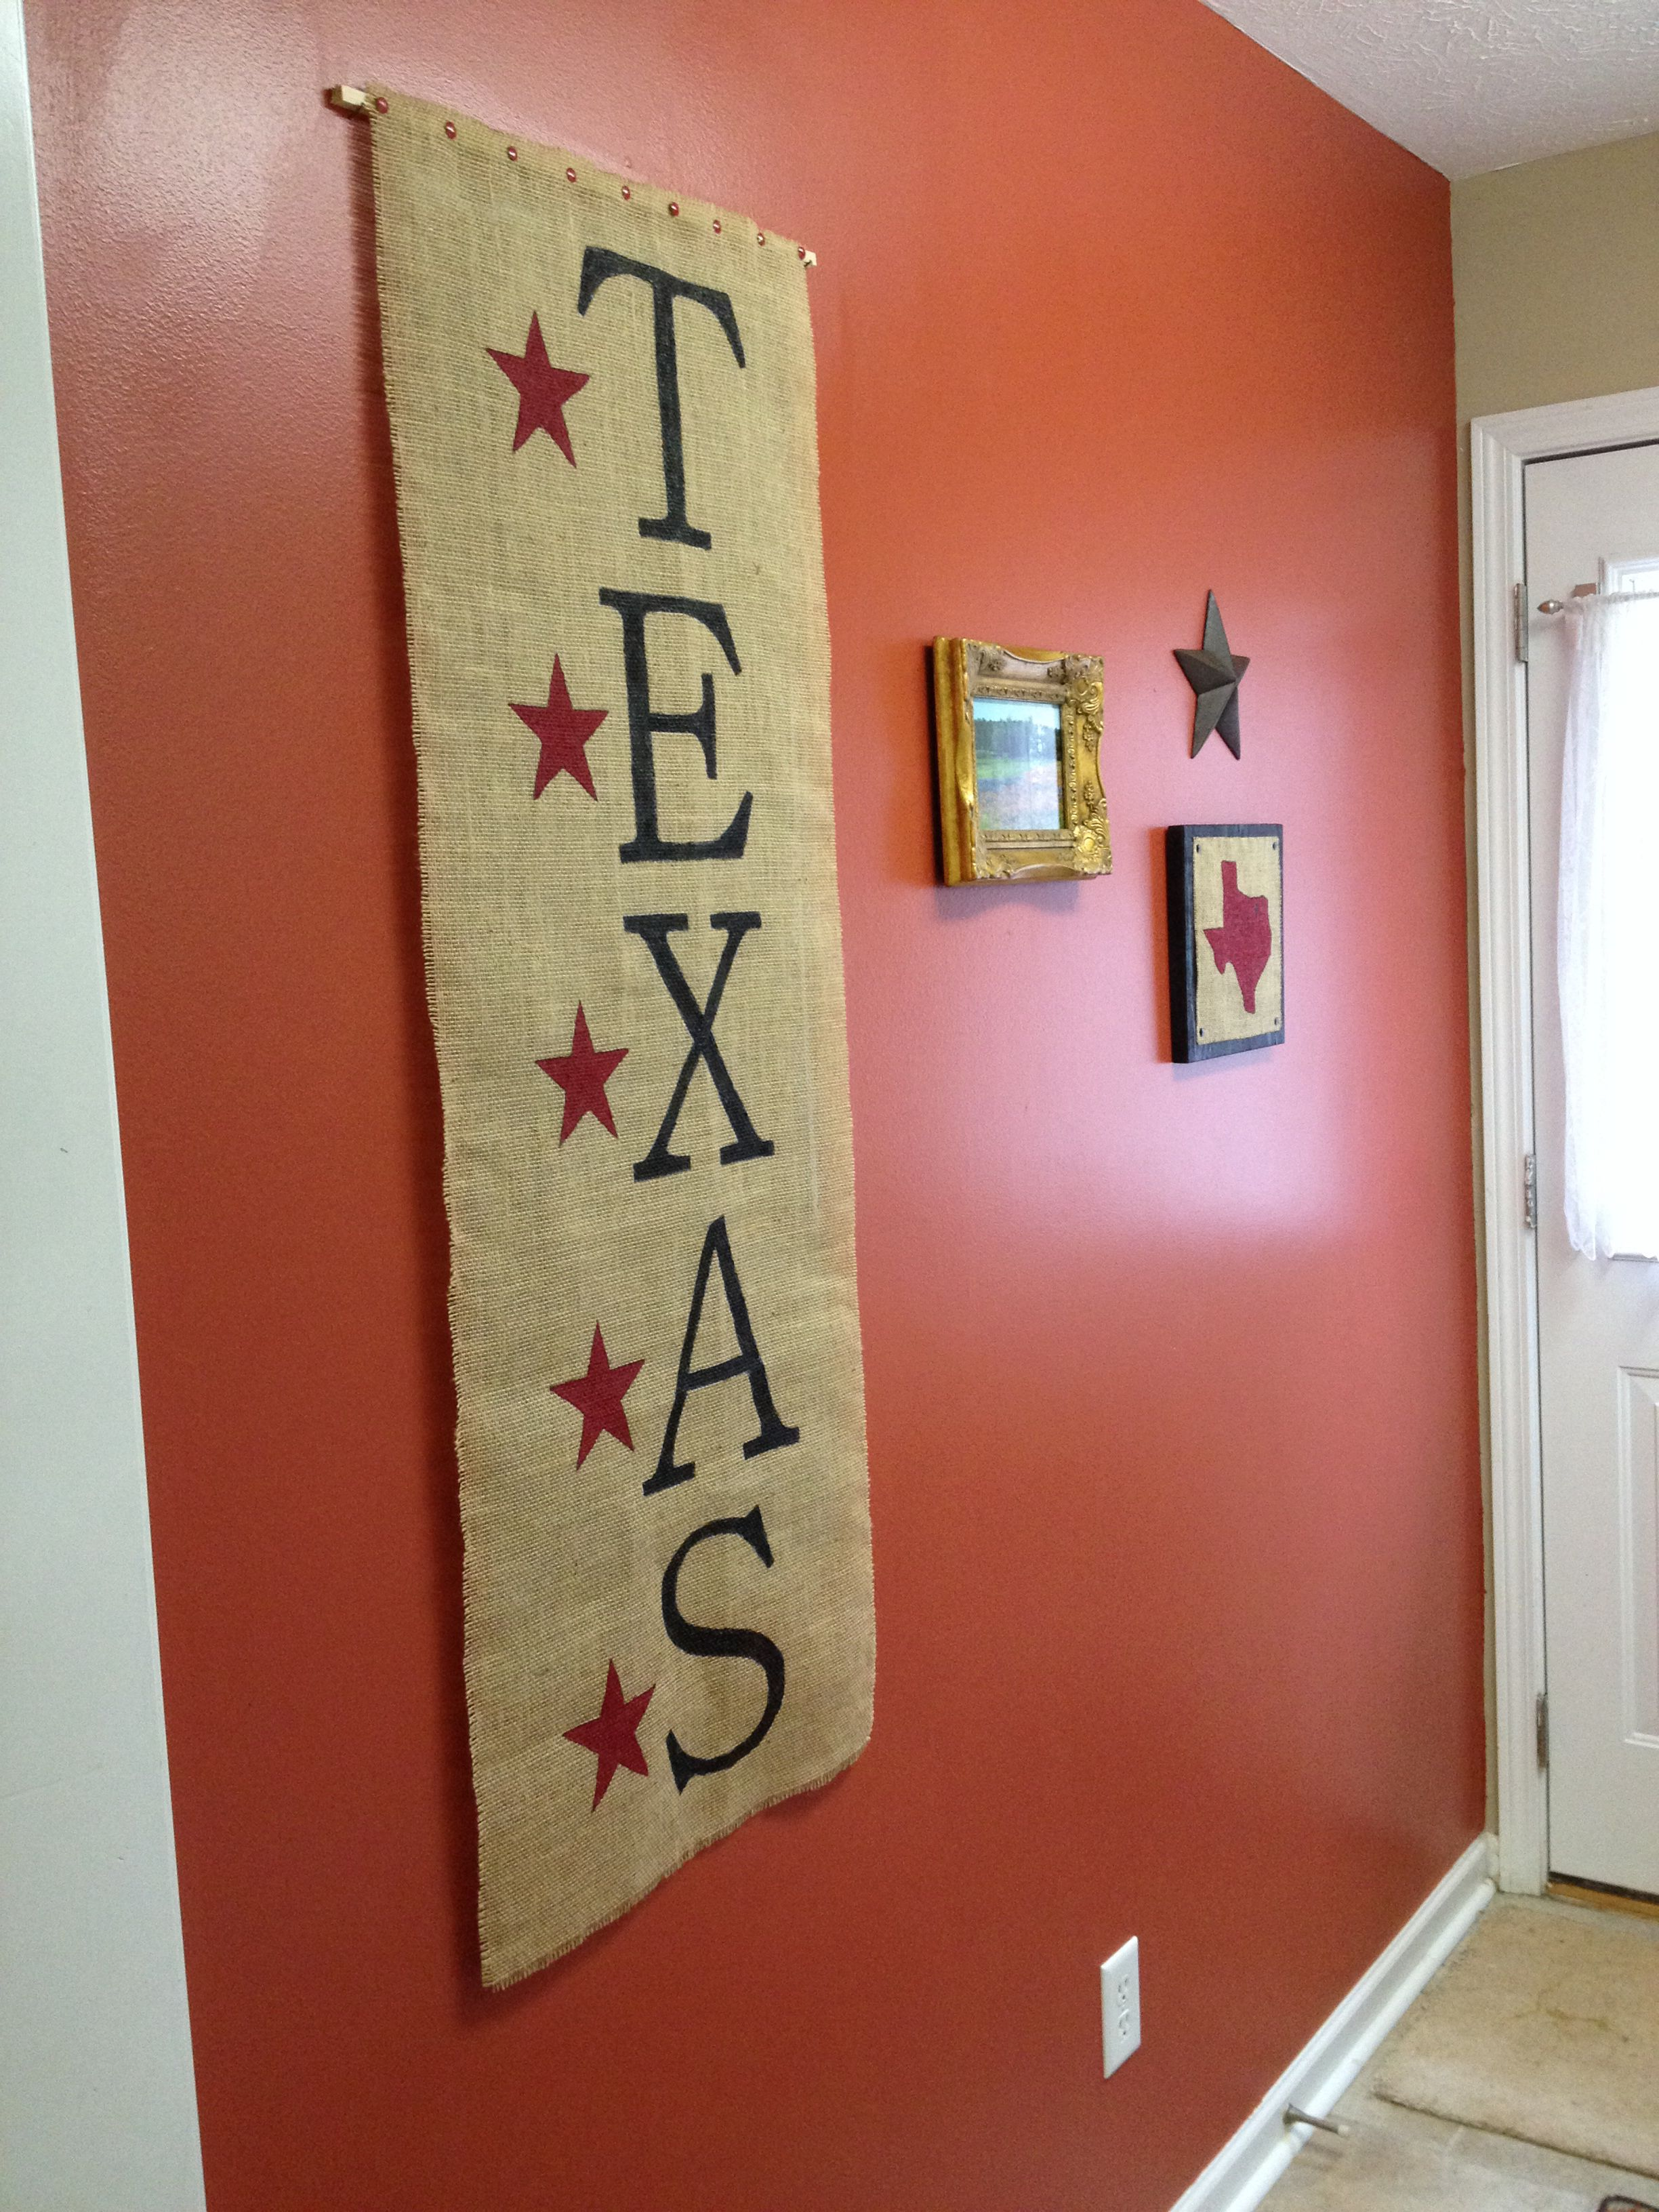 do this with burlap and fabric; instead of state, do last namedo this with burlap and fabric; instead of state, do last name circuit breaker box cover